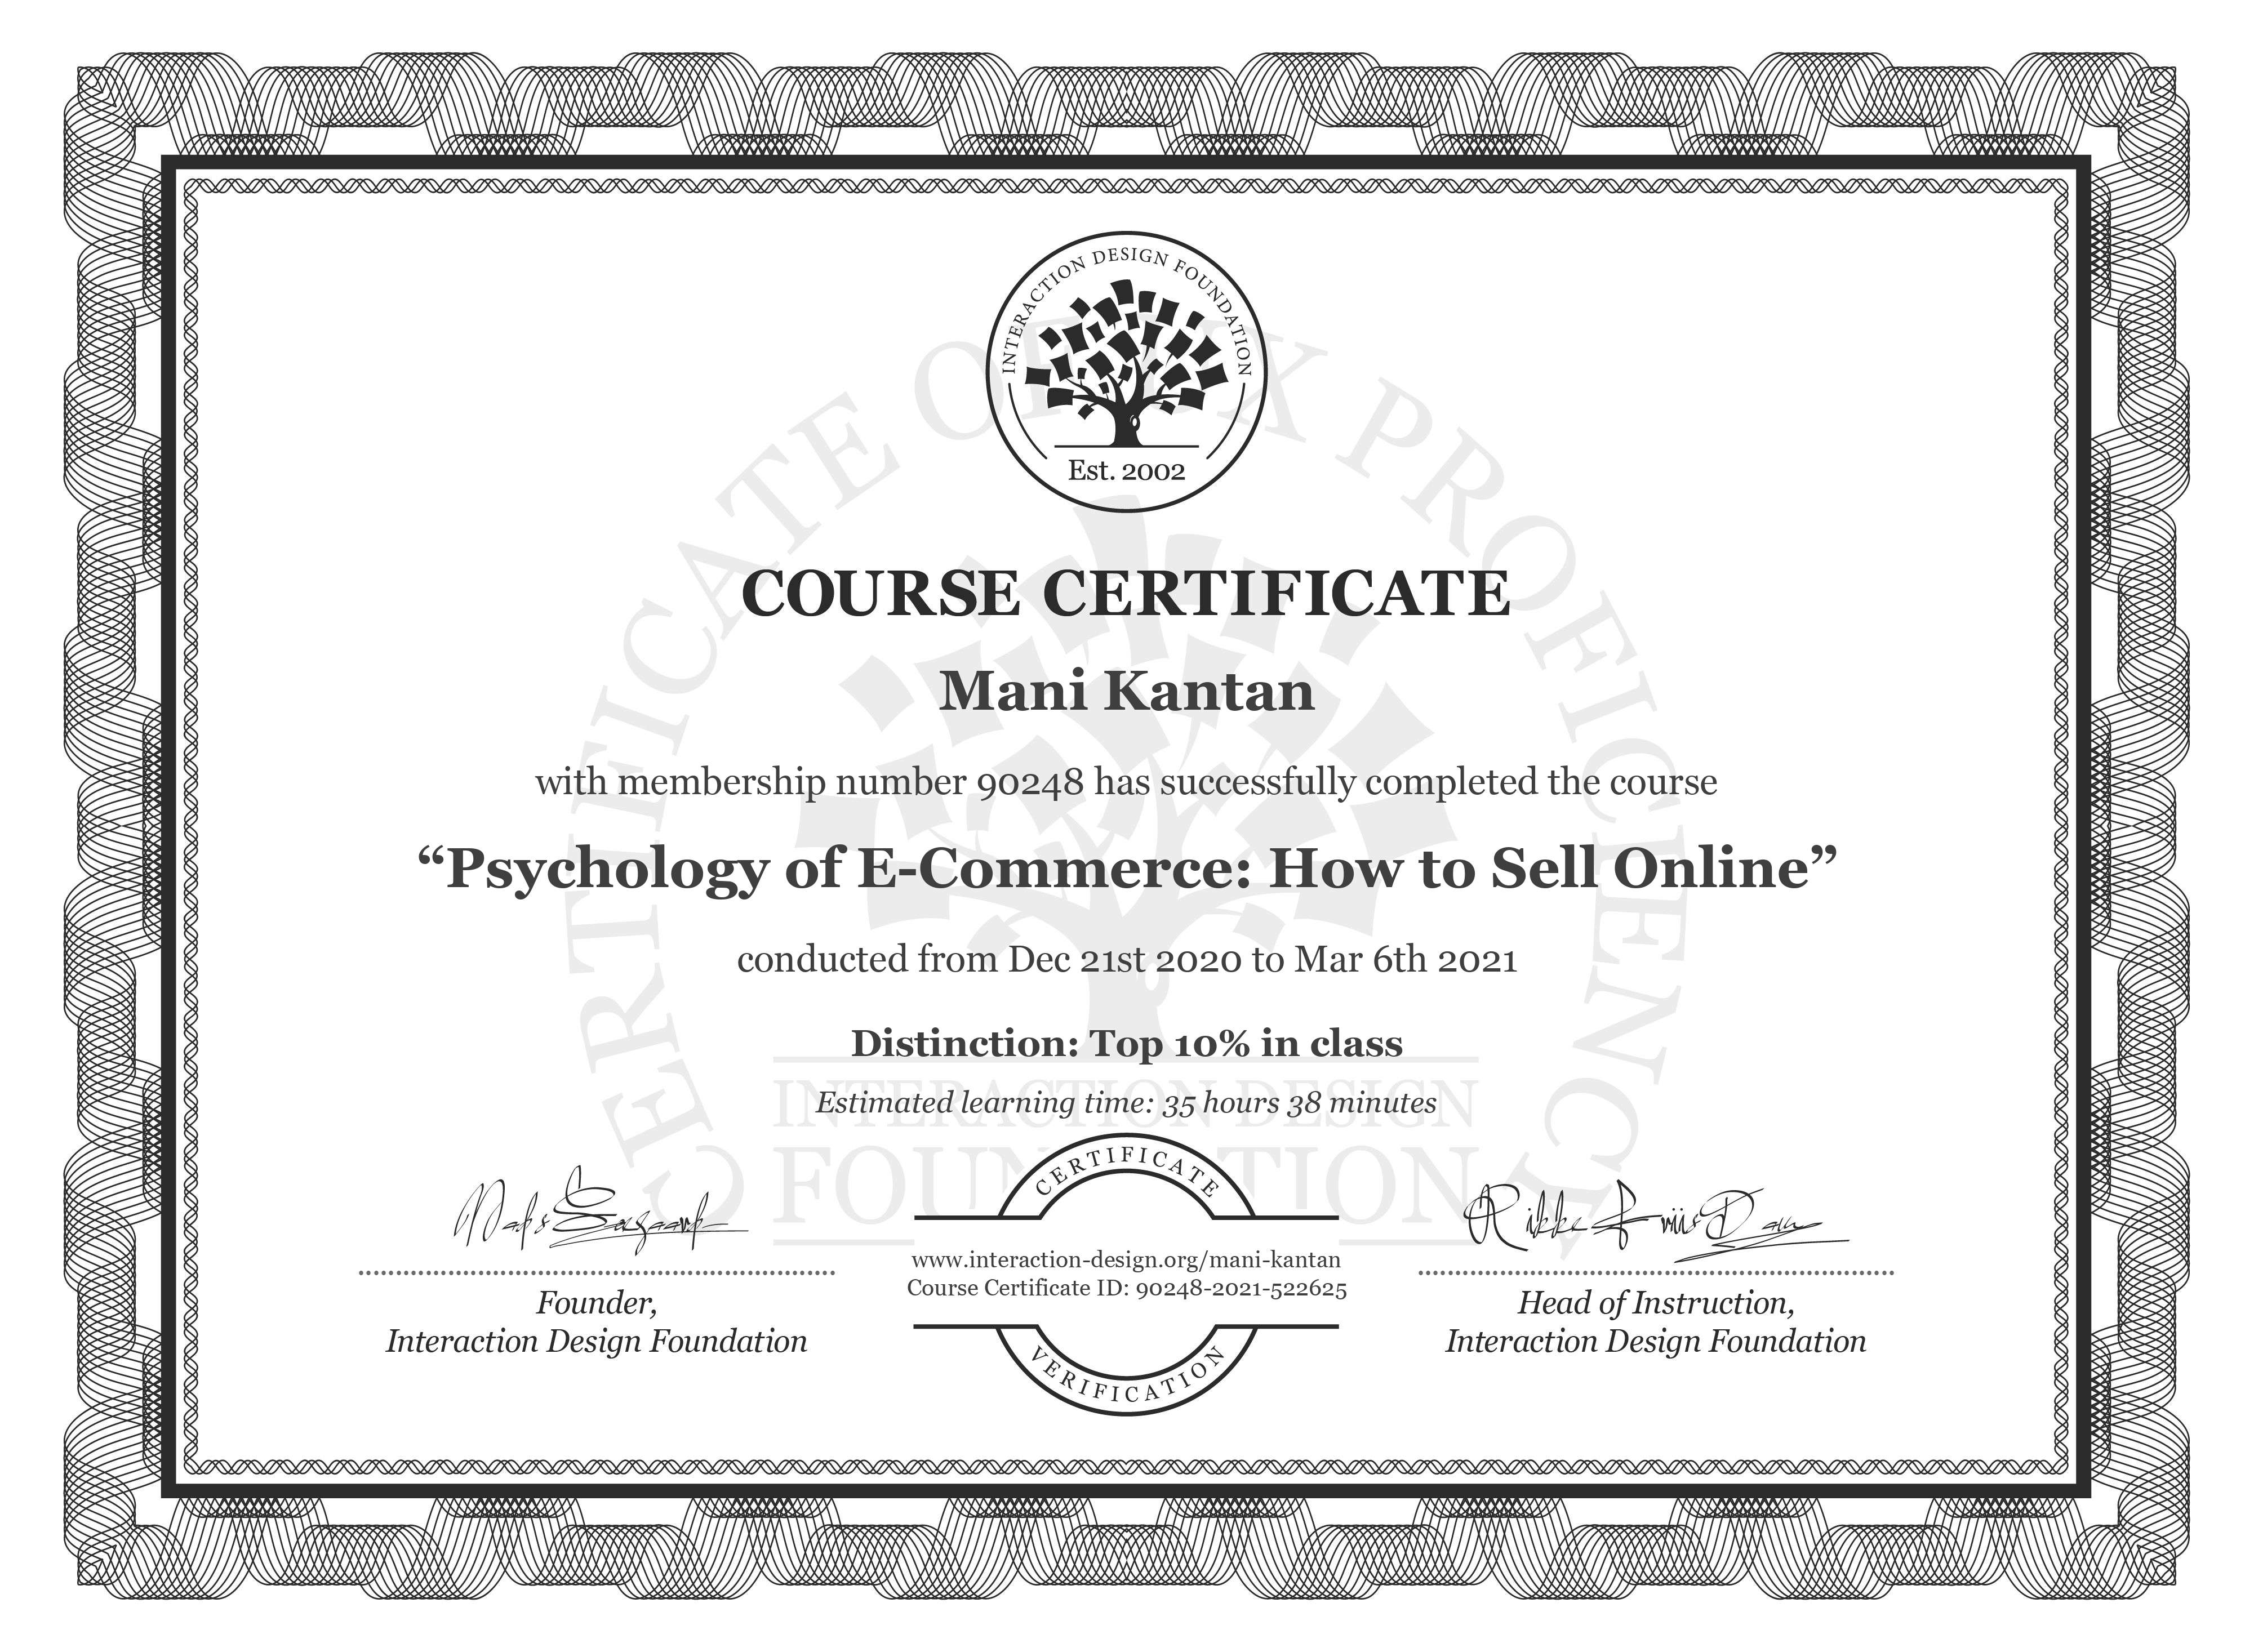 Mani Kantan's Course Certificate: Psychology of E-Commerce: How to Sell Online